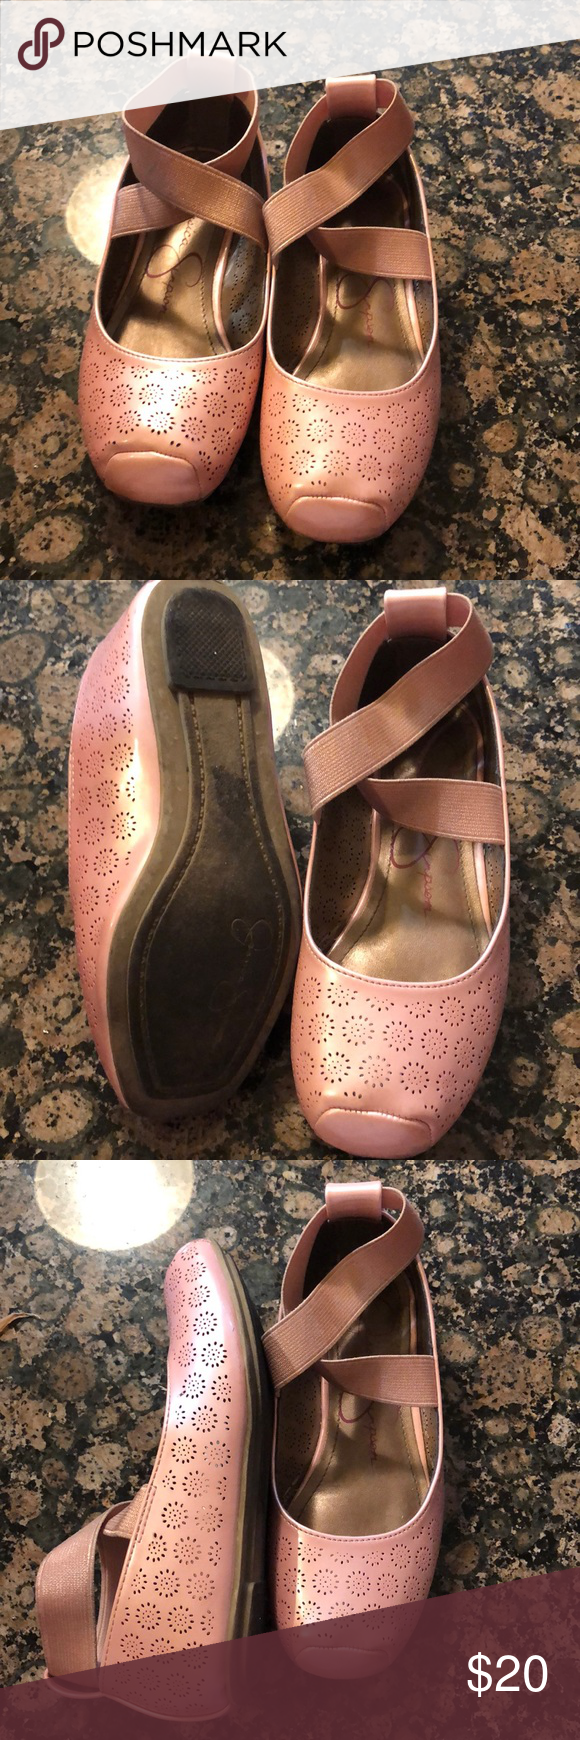 Jessica Simpson girls shoes size 11